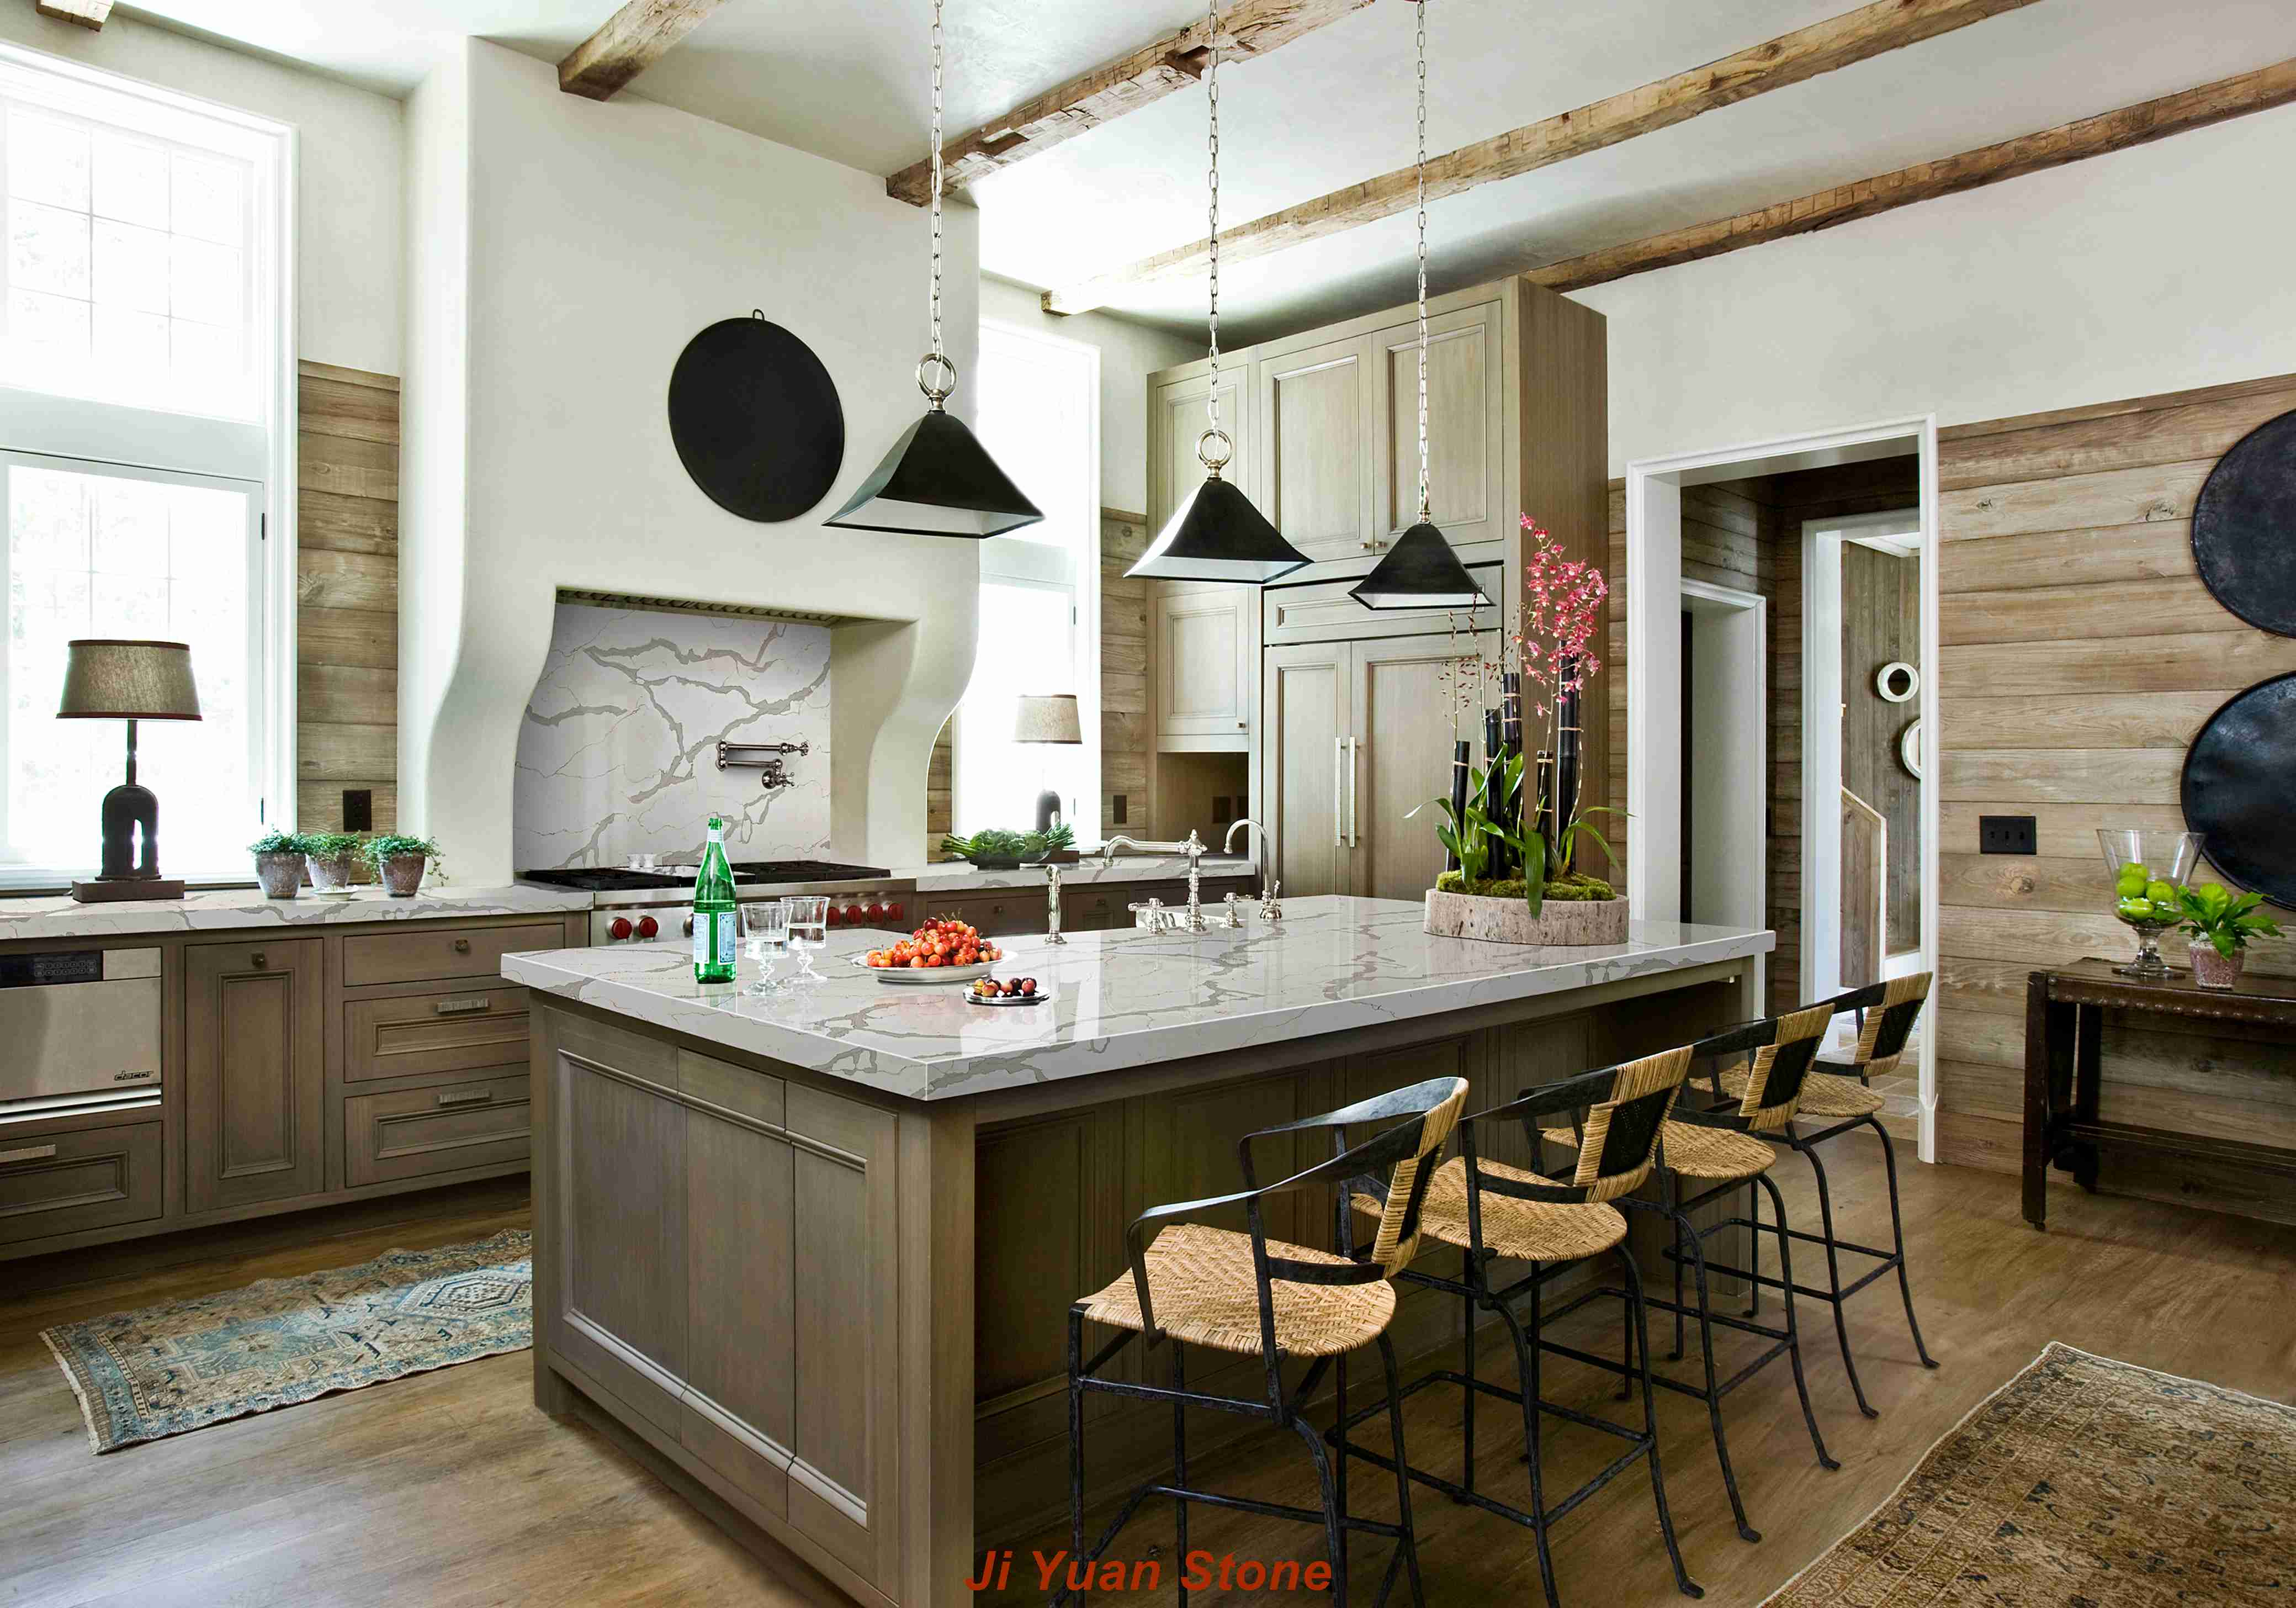 pics of quartz countertops,quartz countertops tucson,is quartz a stone,what does quartz look like,star rose quartz,rose quartz point,how much is quartz,quartz varieties